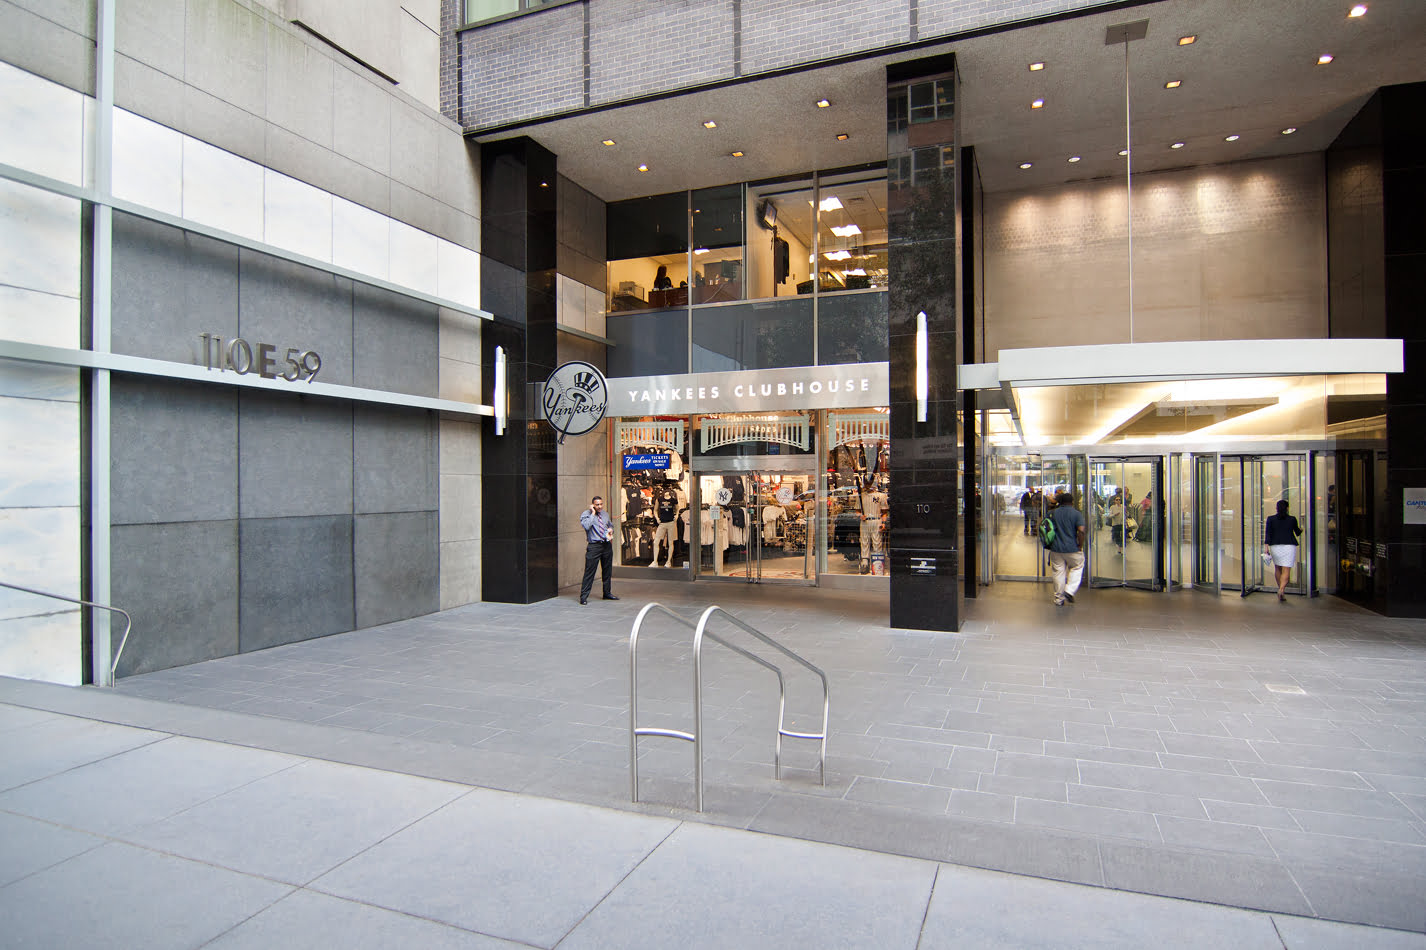 110 East 59th Street retail space between Park Avenue and Lexington Avenue